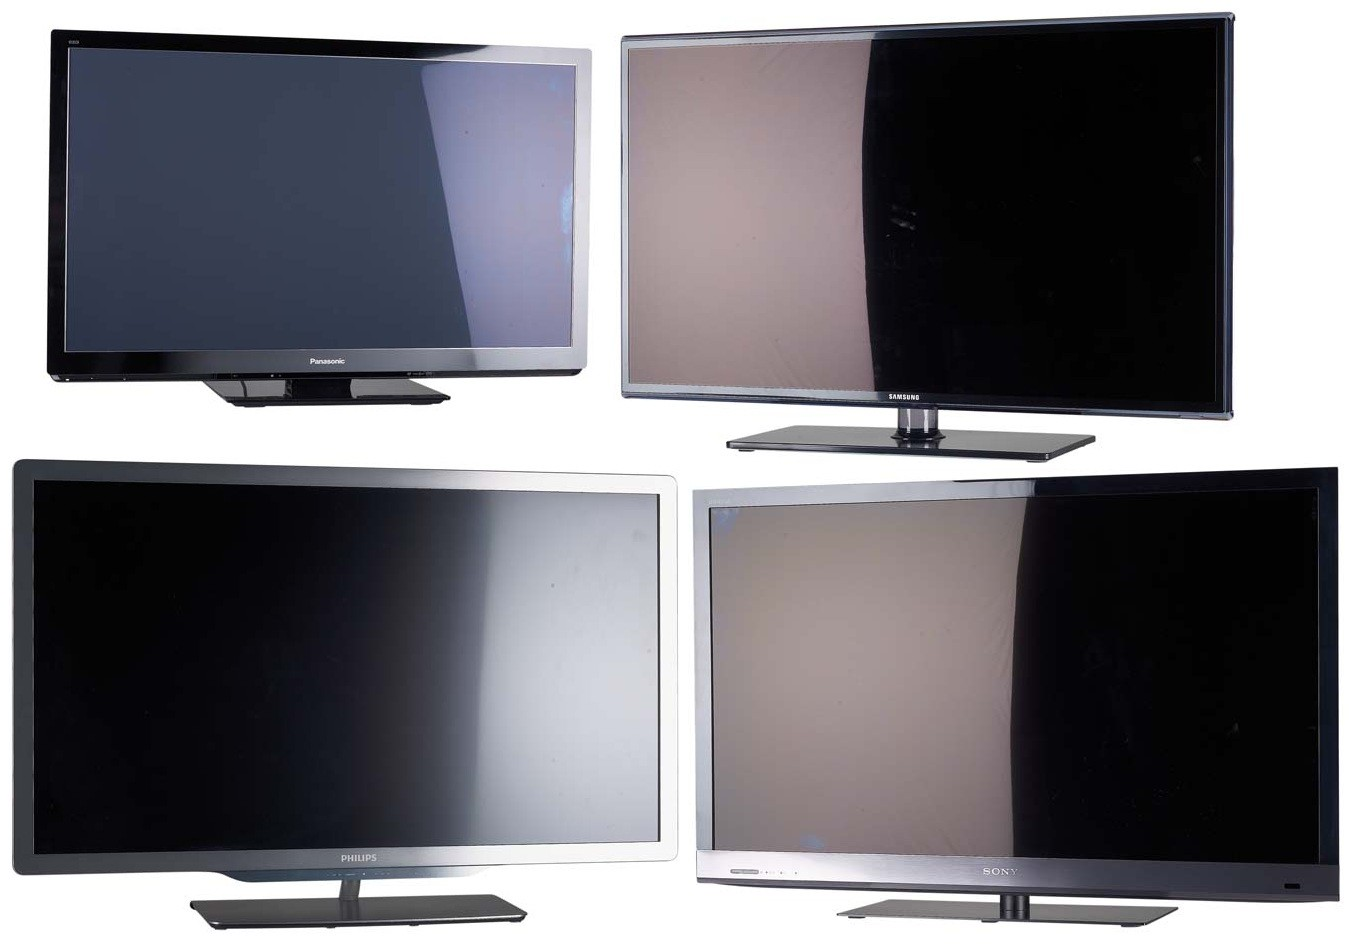 test fernseher panasonic tx p42gt30e fazit. Black Bedroom Furniture Sets. Home Design Ideas